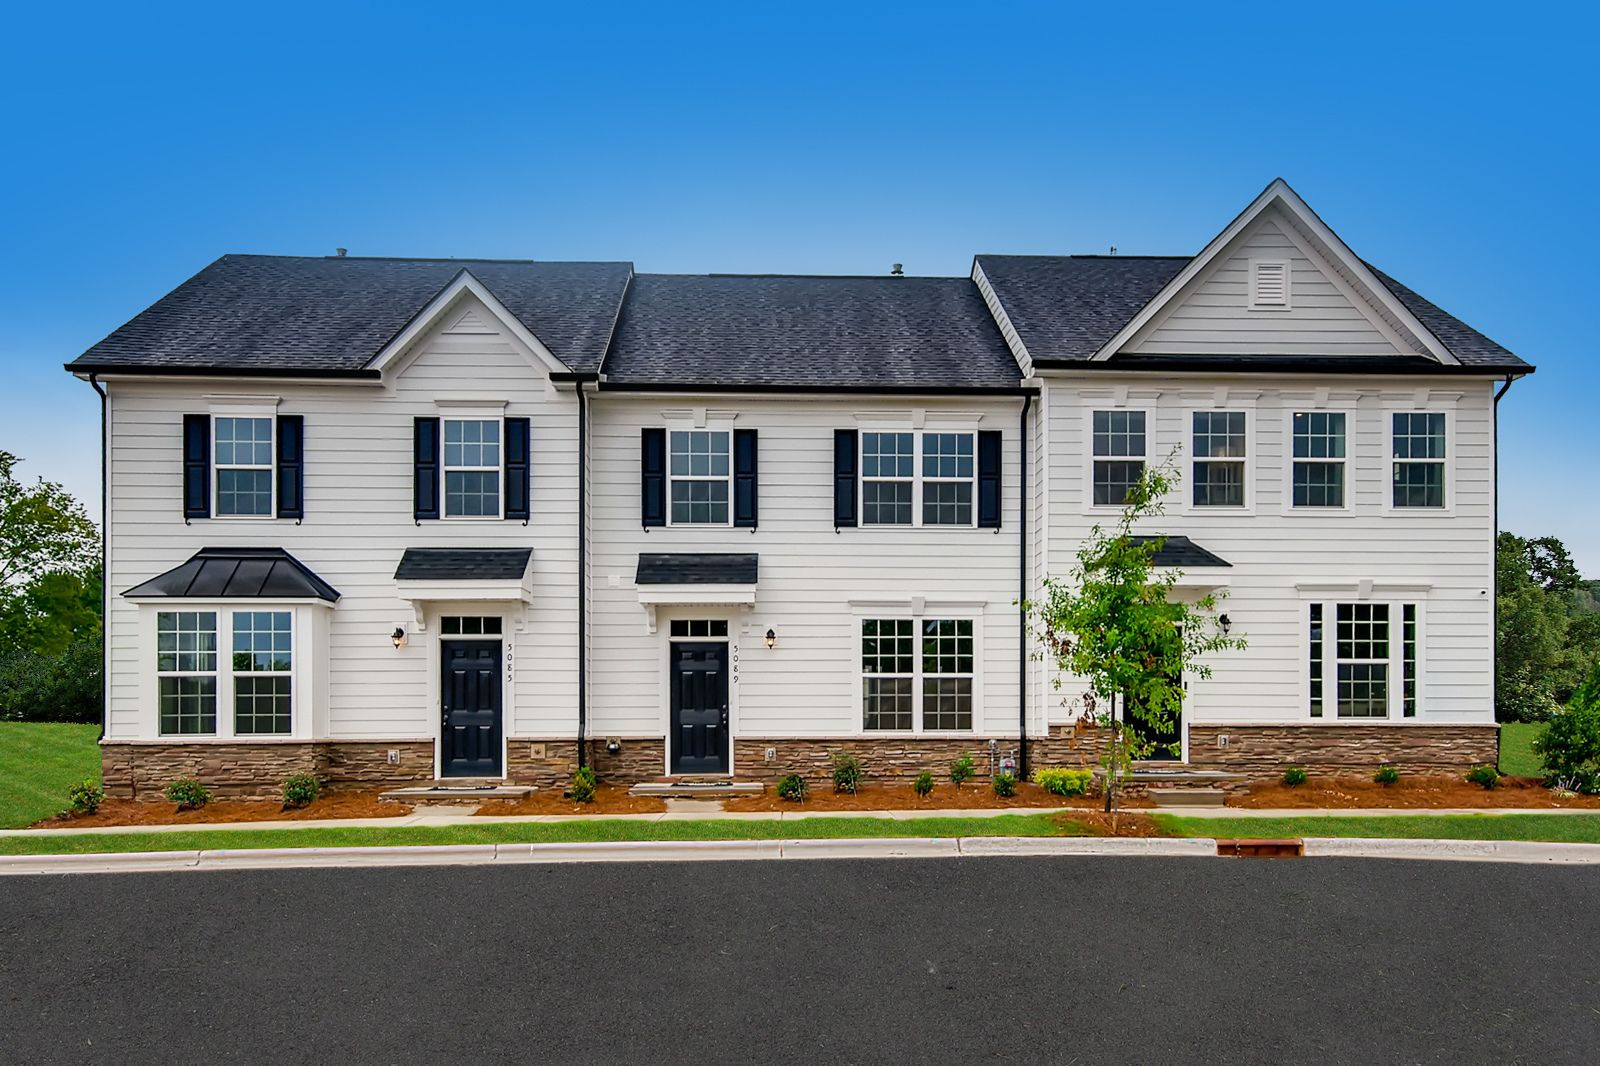 Why rent? Own a 3 bed townhome with fenced-in yard and 2-car garage included:Schedule your visitto receive a Grand Opening Incentive of $5k in upgrades, all appliances included, and $3k in closing costs when you purchase by September 30th.